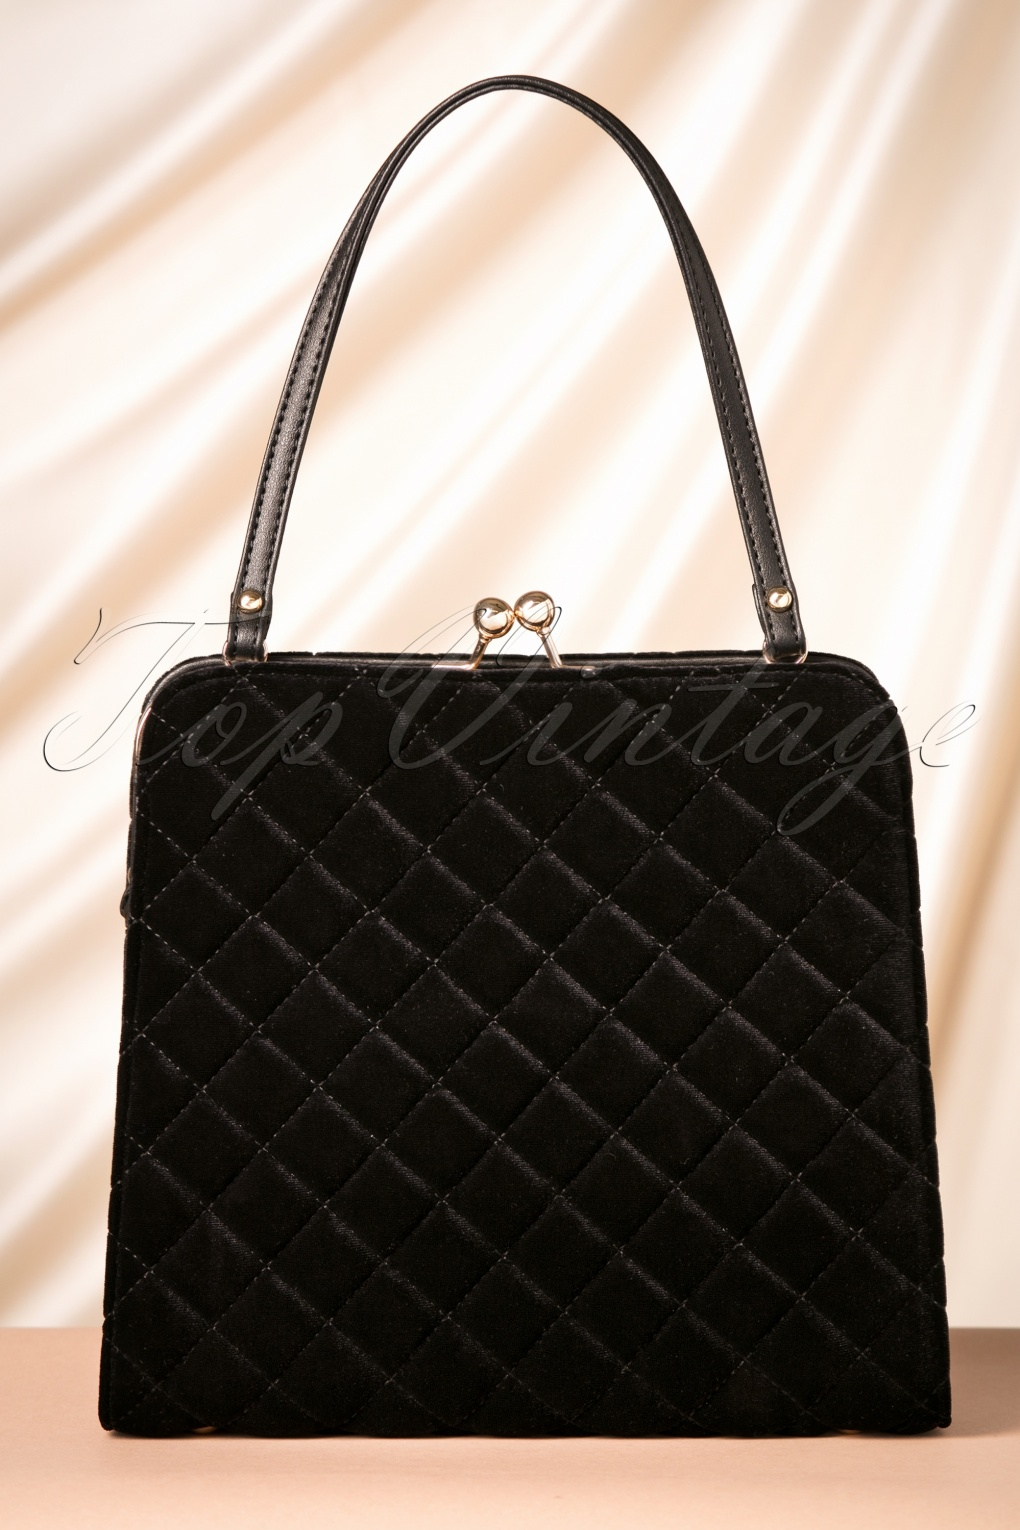 Vintage & Retro Handbags, Purses, Wallets, Bags 50s Quilted Velvet Handbag in Black £26.56 AT vintagedancer.com